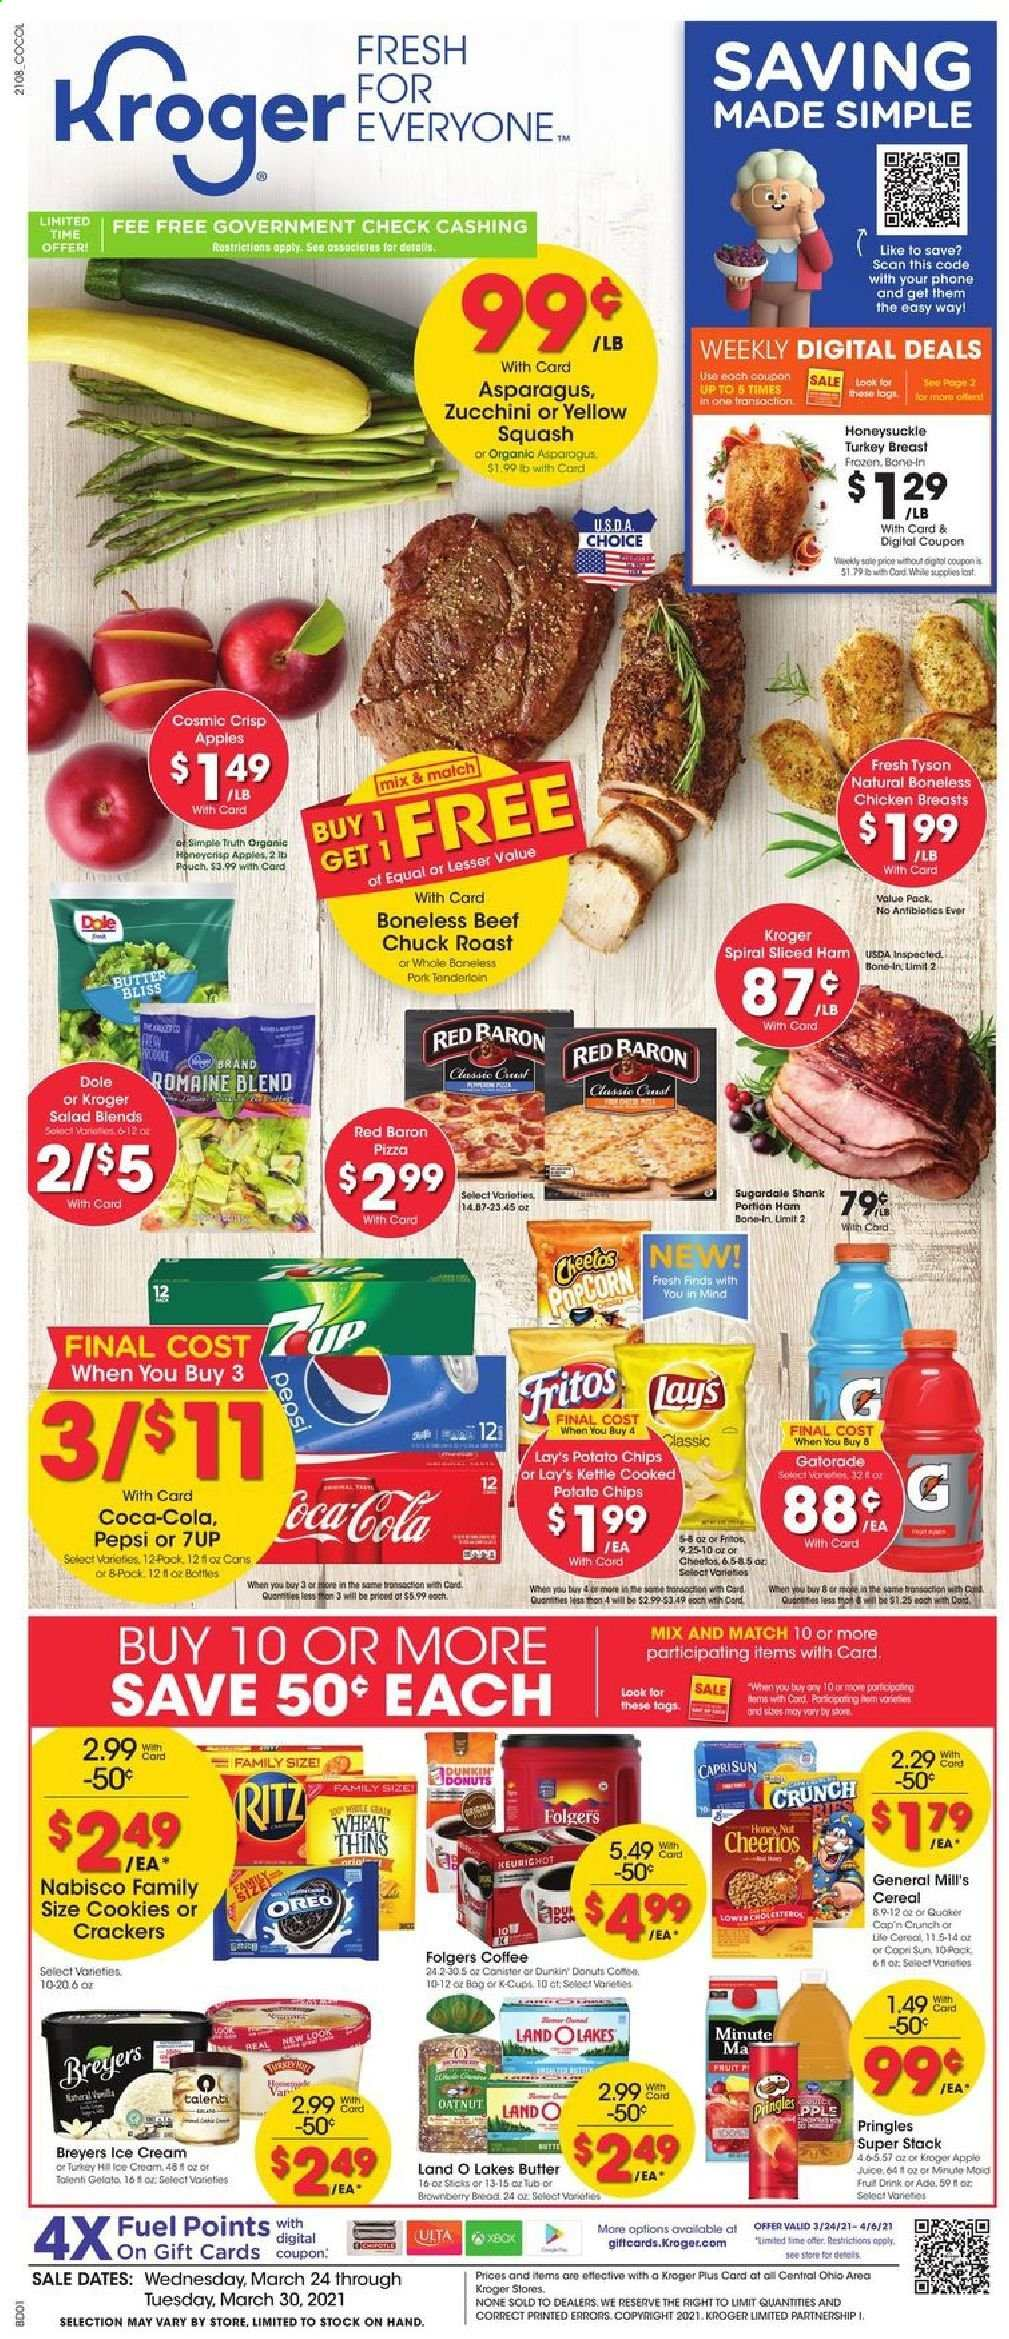 Kroger Flyer - 03.24.2021 - 03.30.2021 - Sales products - Dole, apples, pizza, salad, ham, curd, Oreo, butter, ice cream, Talenti Gelato, zucchini squash, Red Baron, cookies, crackers, RITZ, potato chips, Pringles, Lay's, Thins, popcorn, cereals, Fritos, Cheerios, Cap'n Crunch, Coca-Cola, Pepsi, 7UP, Gatorade, coffee, Folgers, coffee capsules, L'Or, K-Cups, turkey breast, chicken, chicken breasts, turkey meat, beef meat, chuck roast, pork meat, pork tenderloin, cap. Page 1.